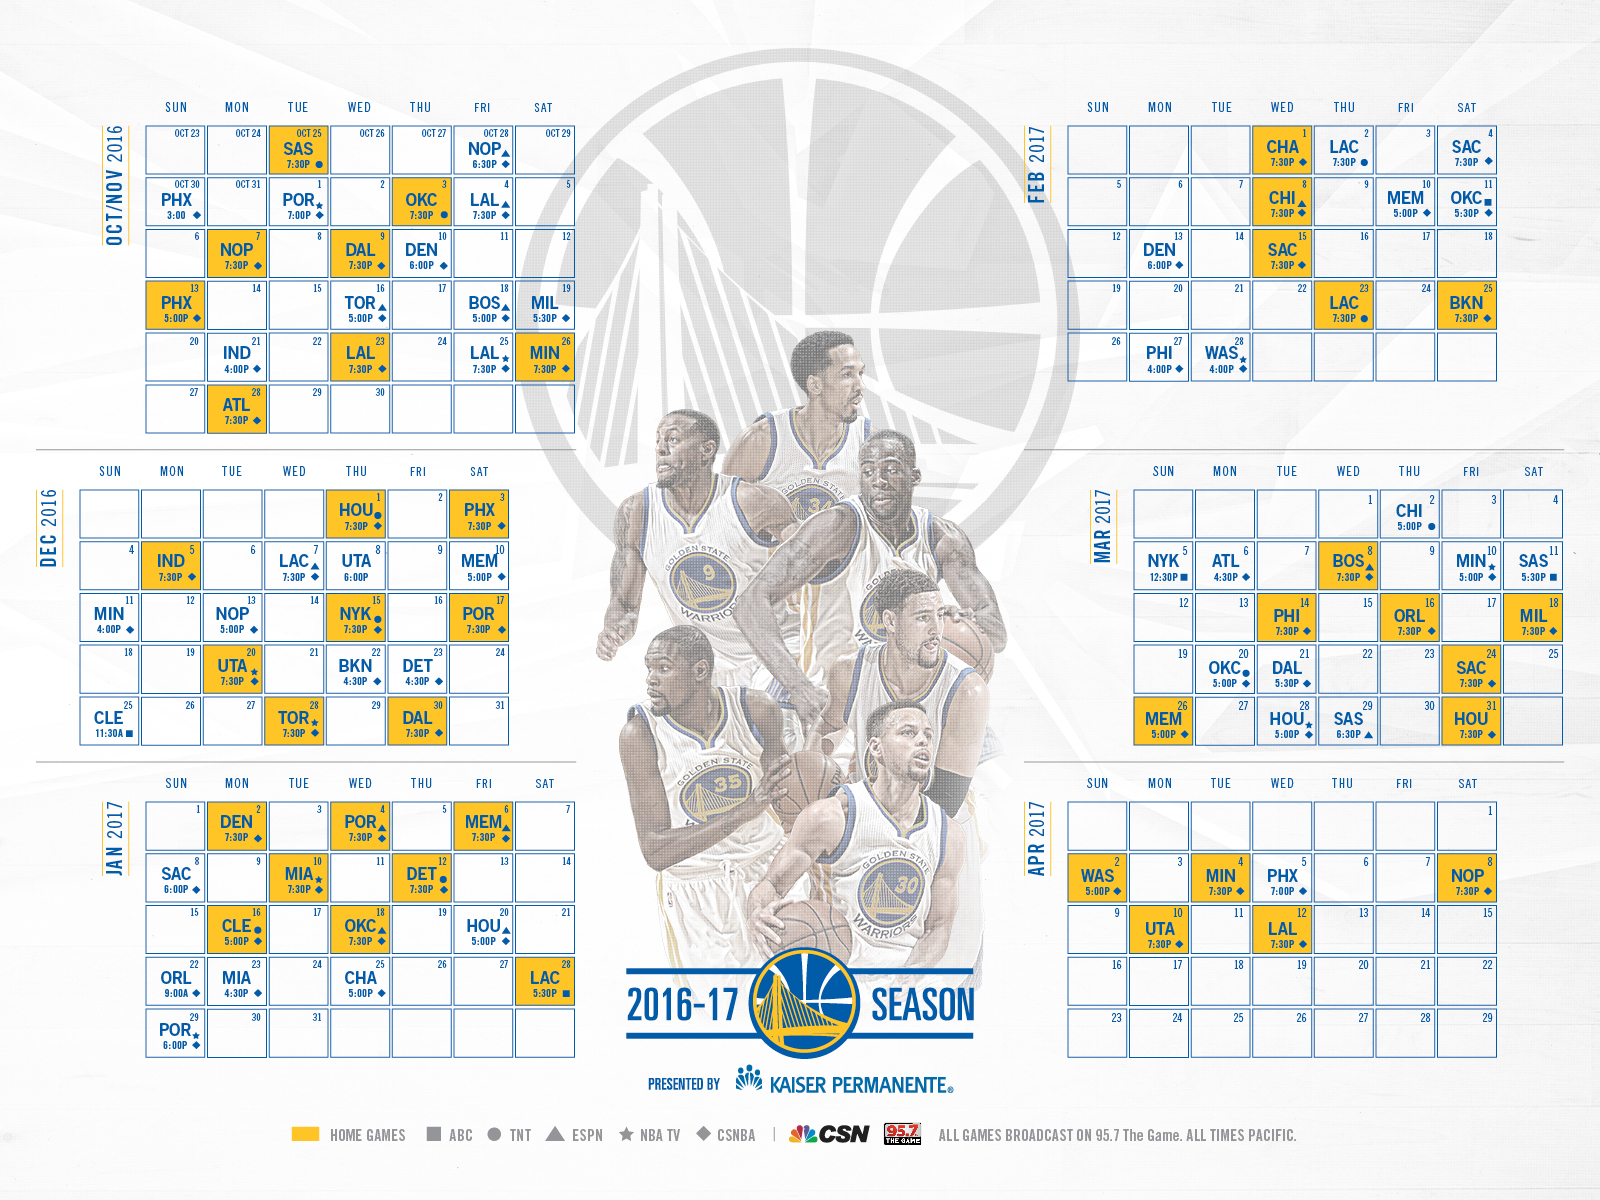 Golden State Warriors Announce Schedule for 2016-17 Season | Golden State Warriors